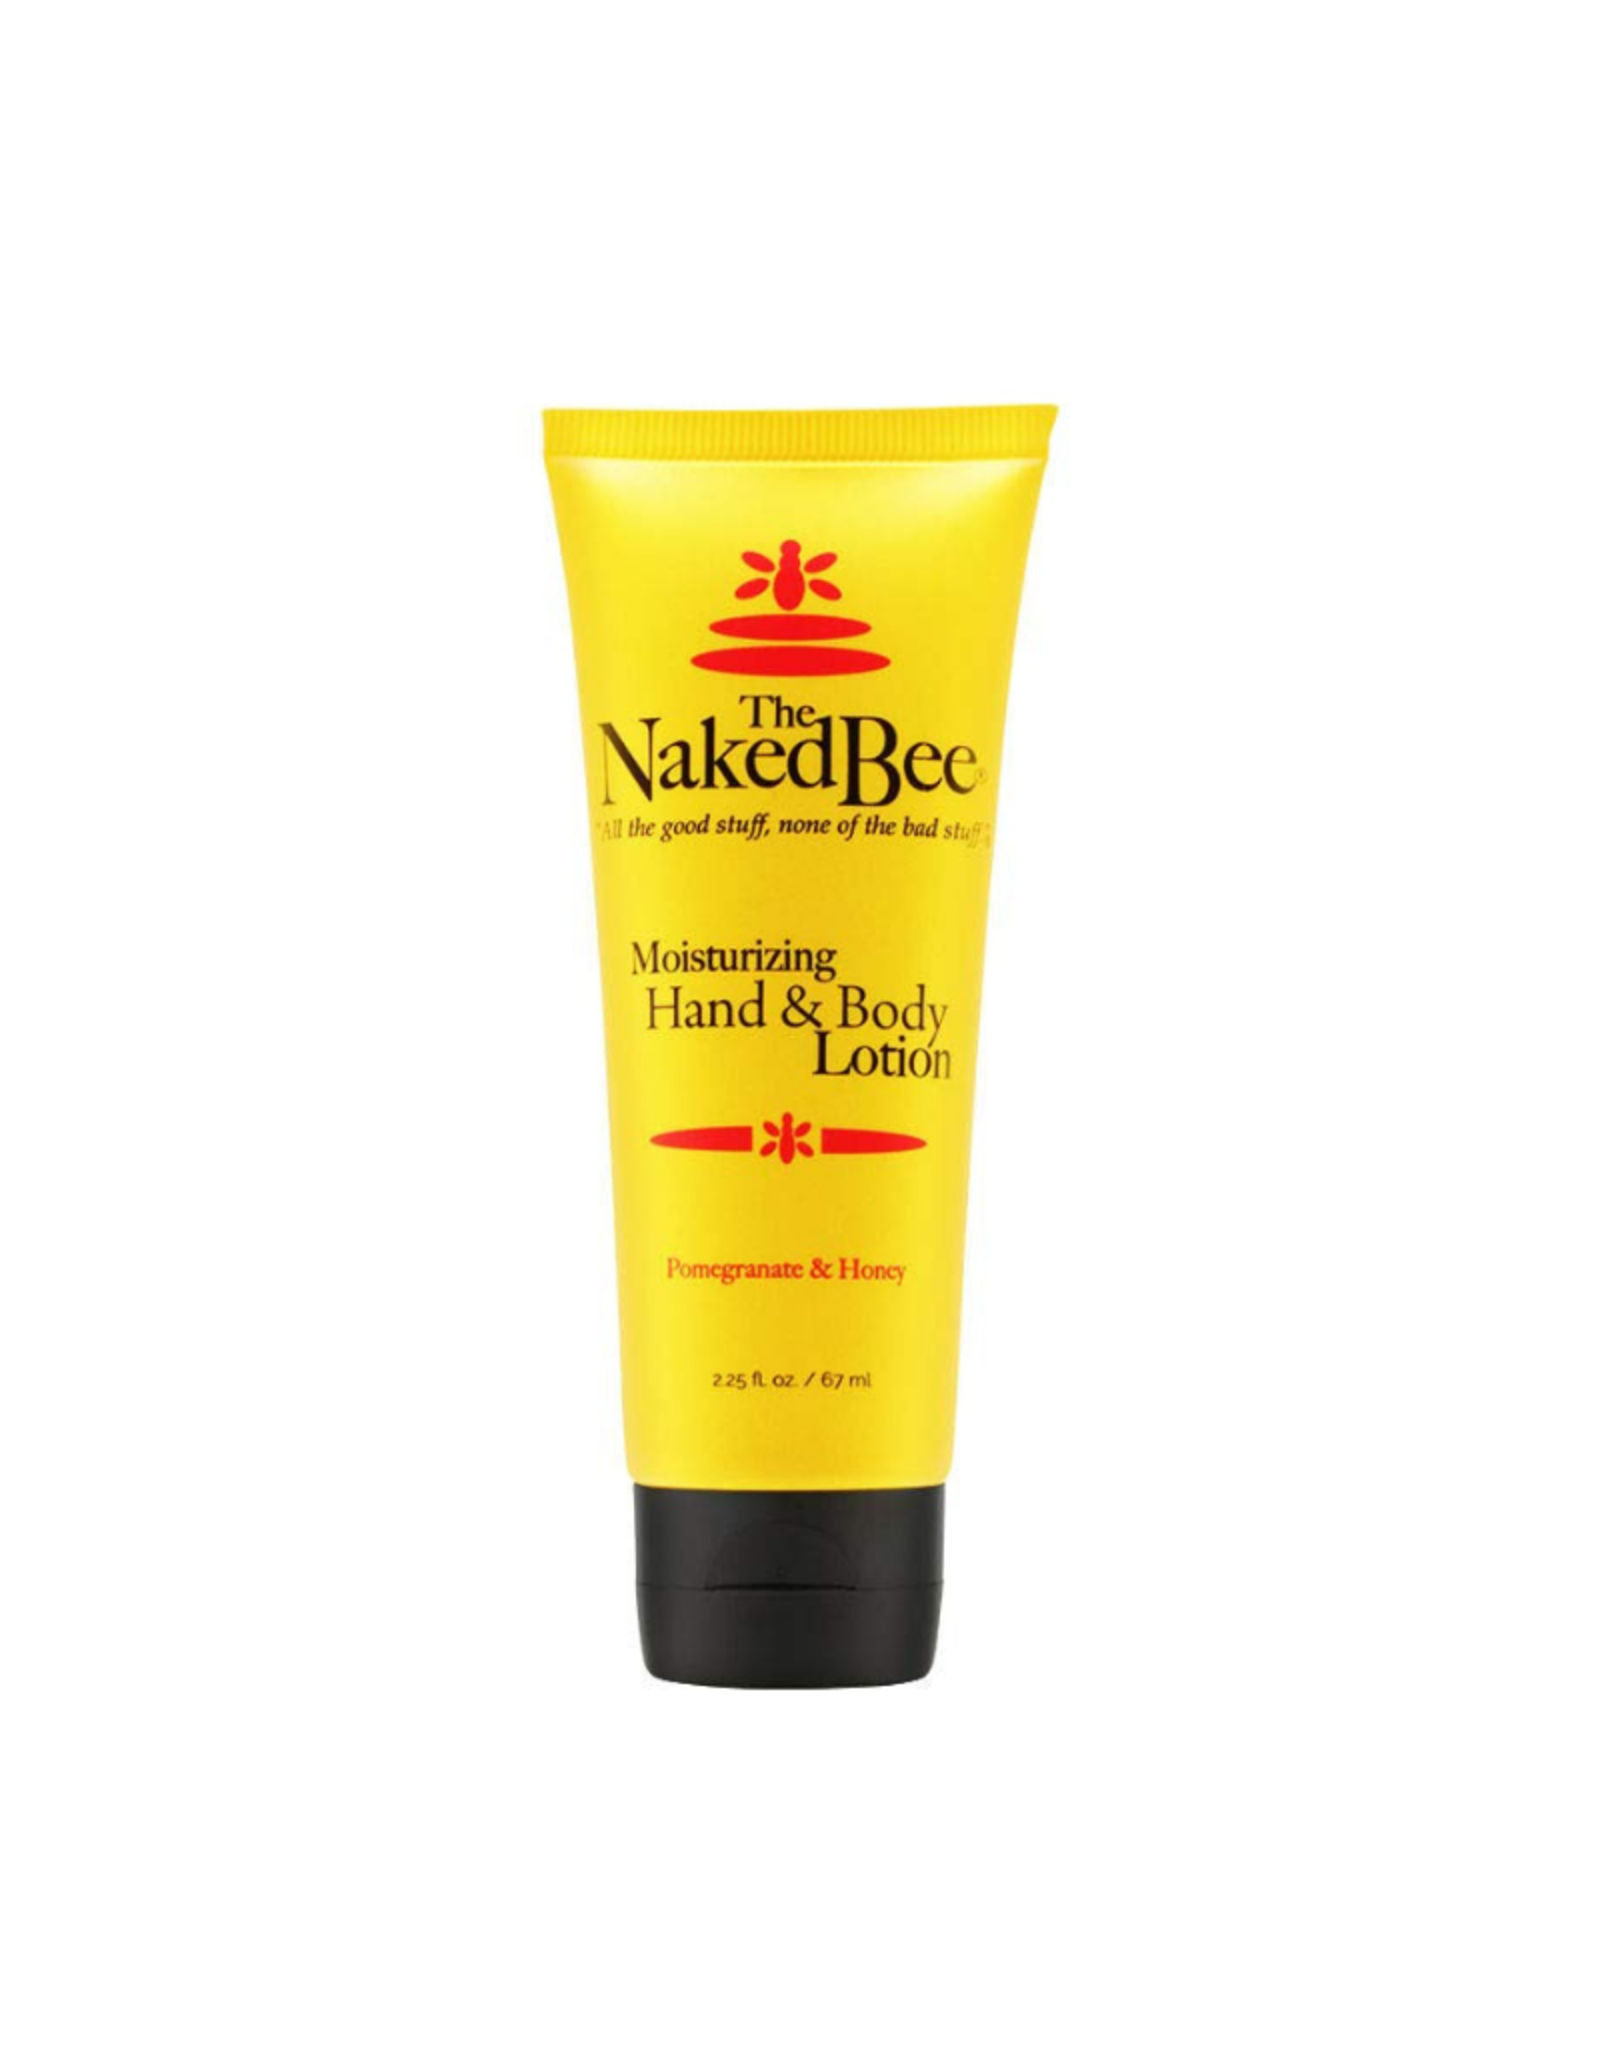 The Naked Bee Moisturizing Hand and Body Lotion 2.25oz